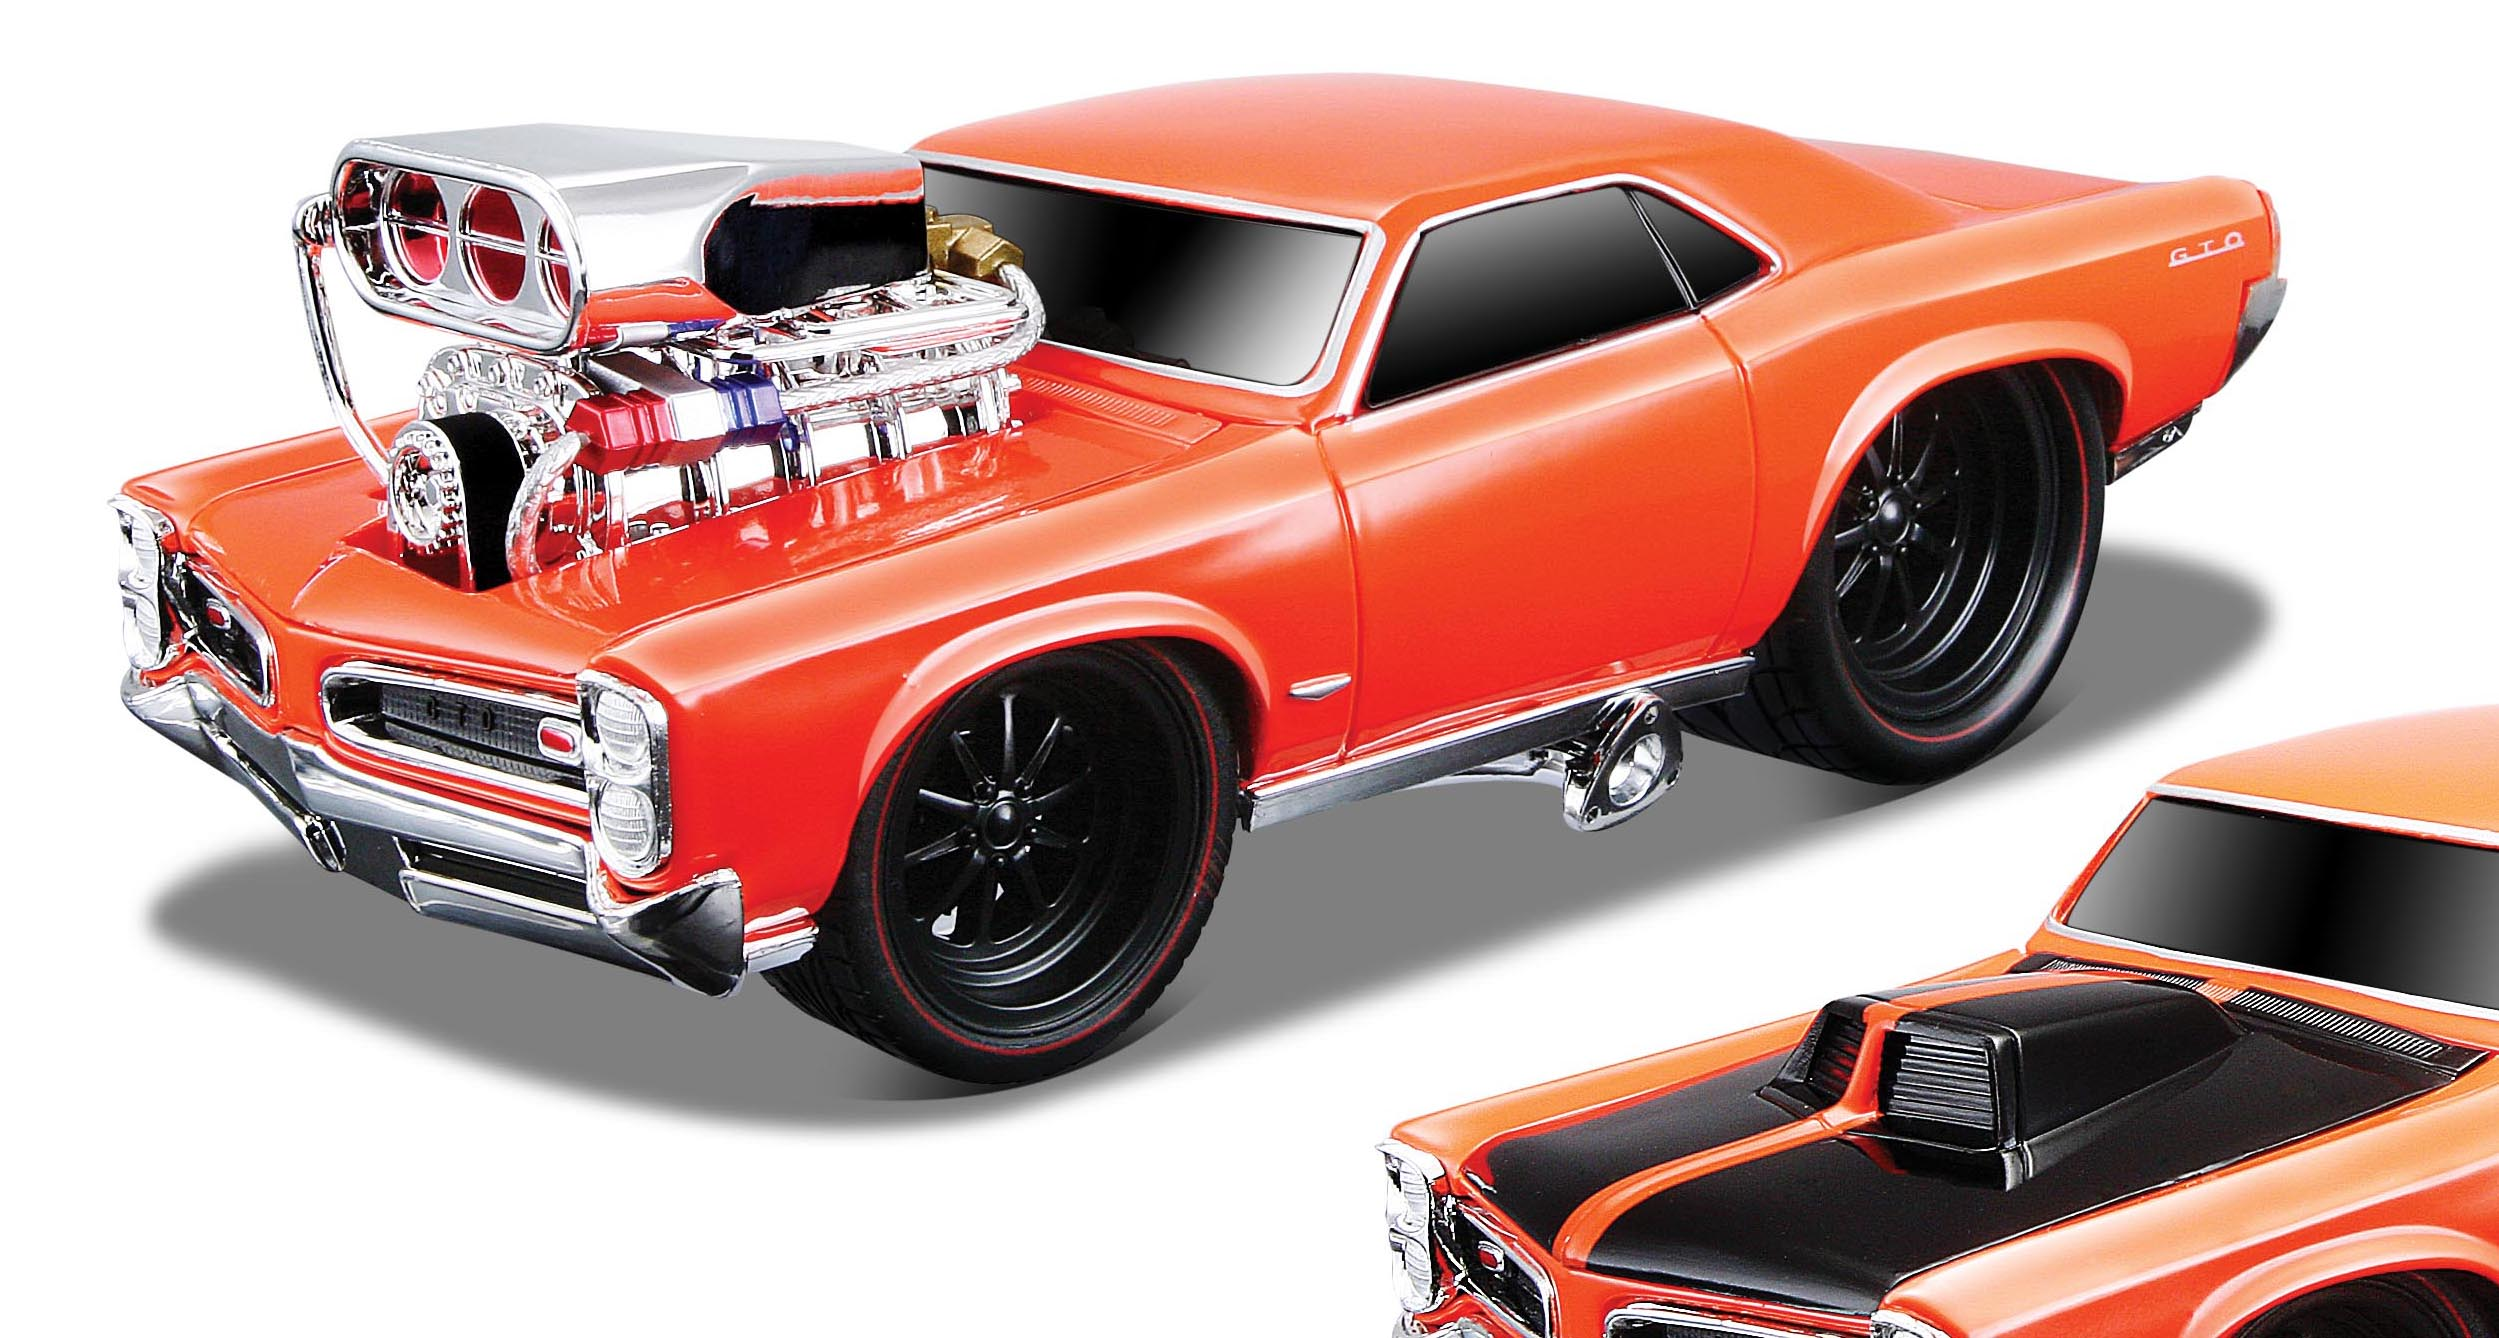 1966 Pontiac Gto Model Car Kits Hobbydb